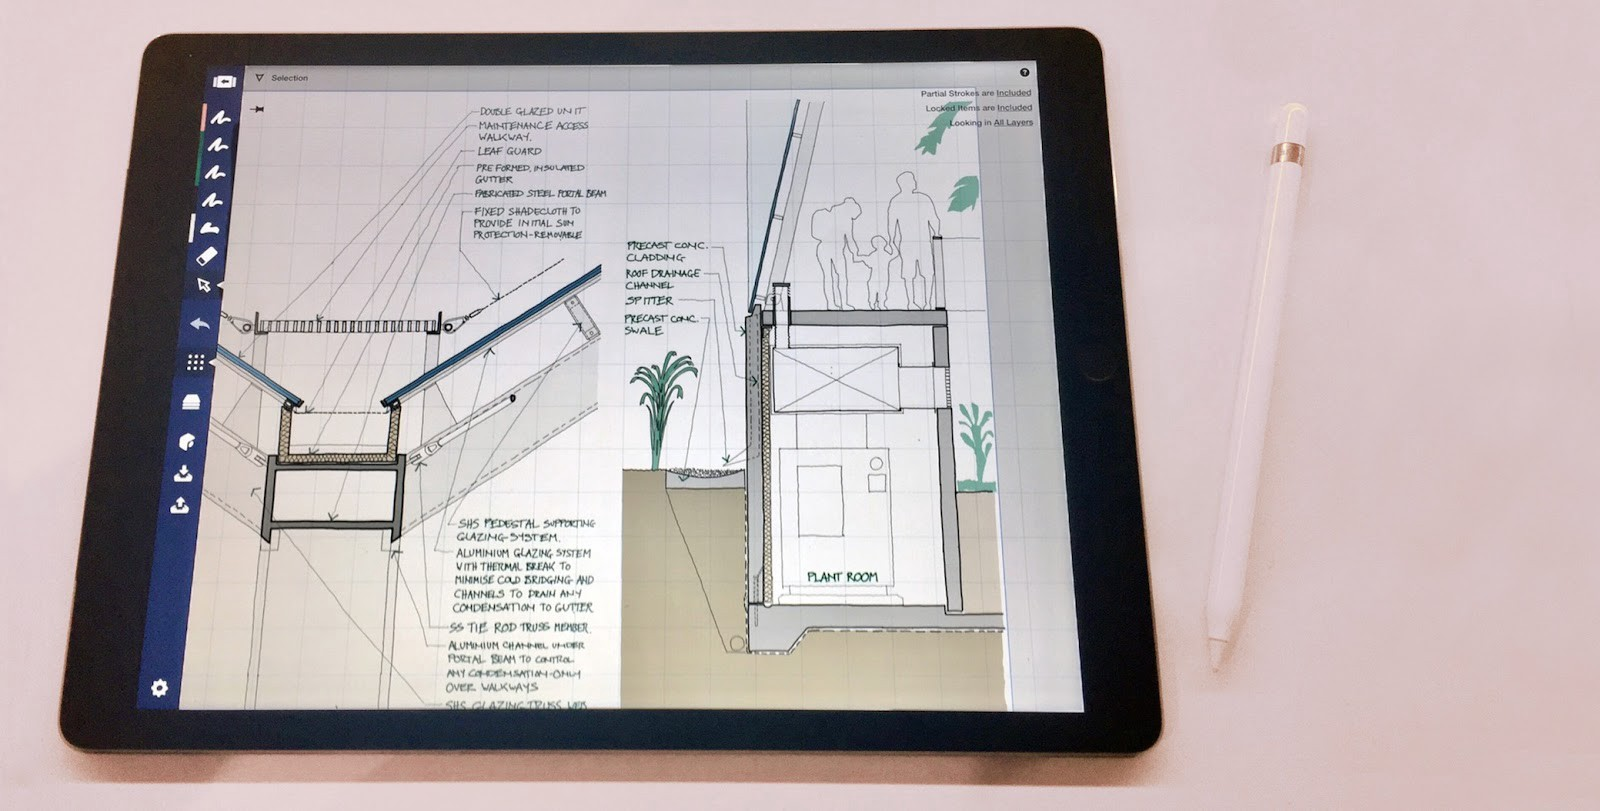 The design life of a paperless architect concepts medium since starting to use the ipad pro my overall process is still very much the same but it has become more streamlined and effectively paperless malvernweather Choice Image